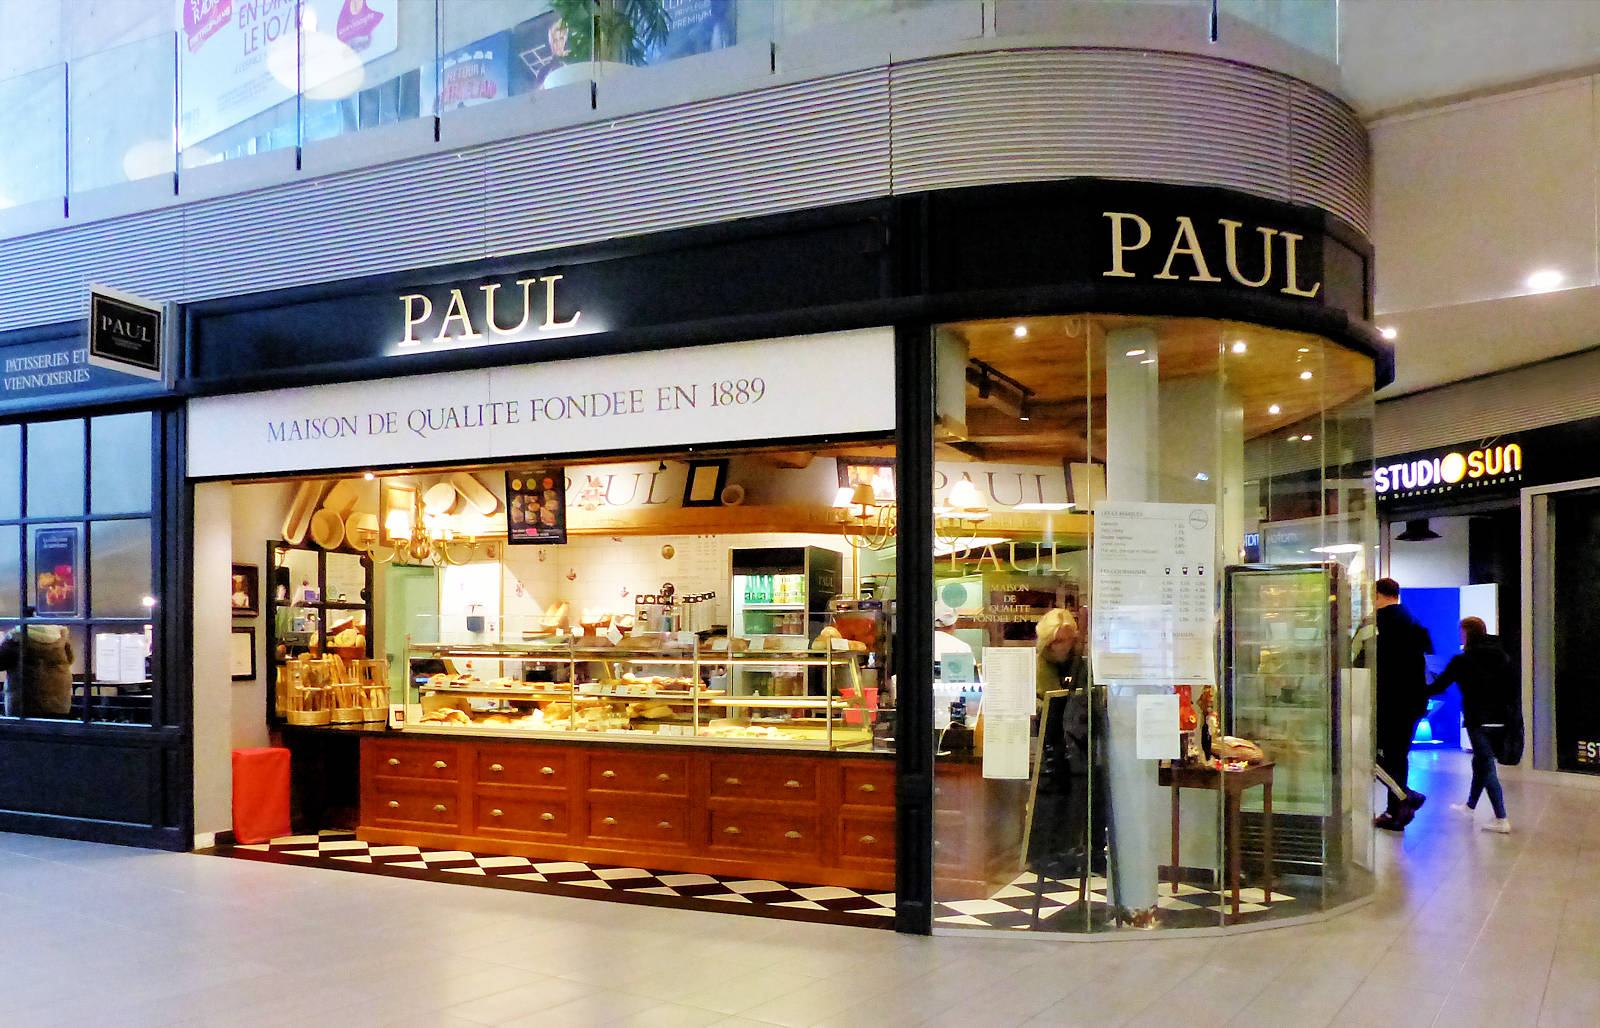 Paul Espace Commercial St-Christophe, Tourcoing